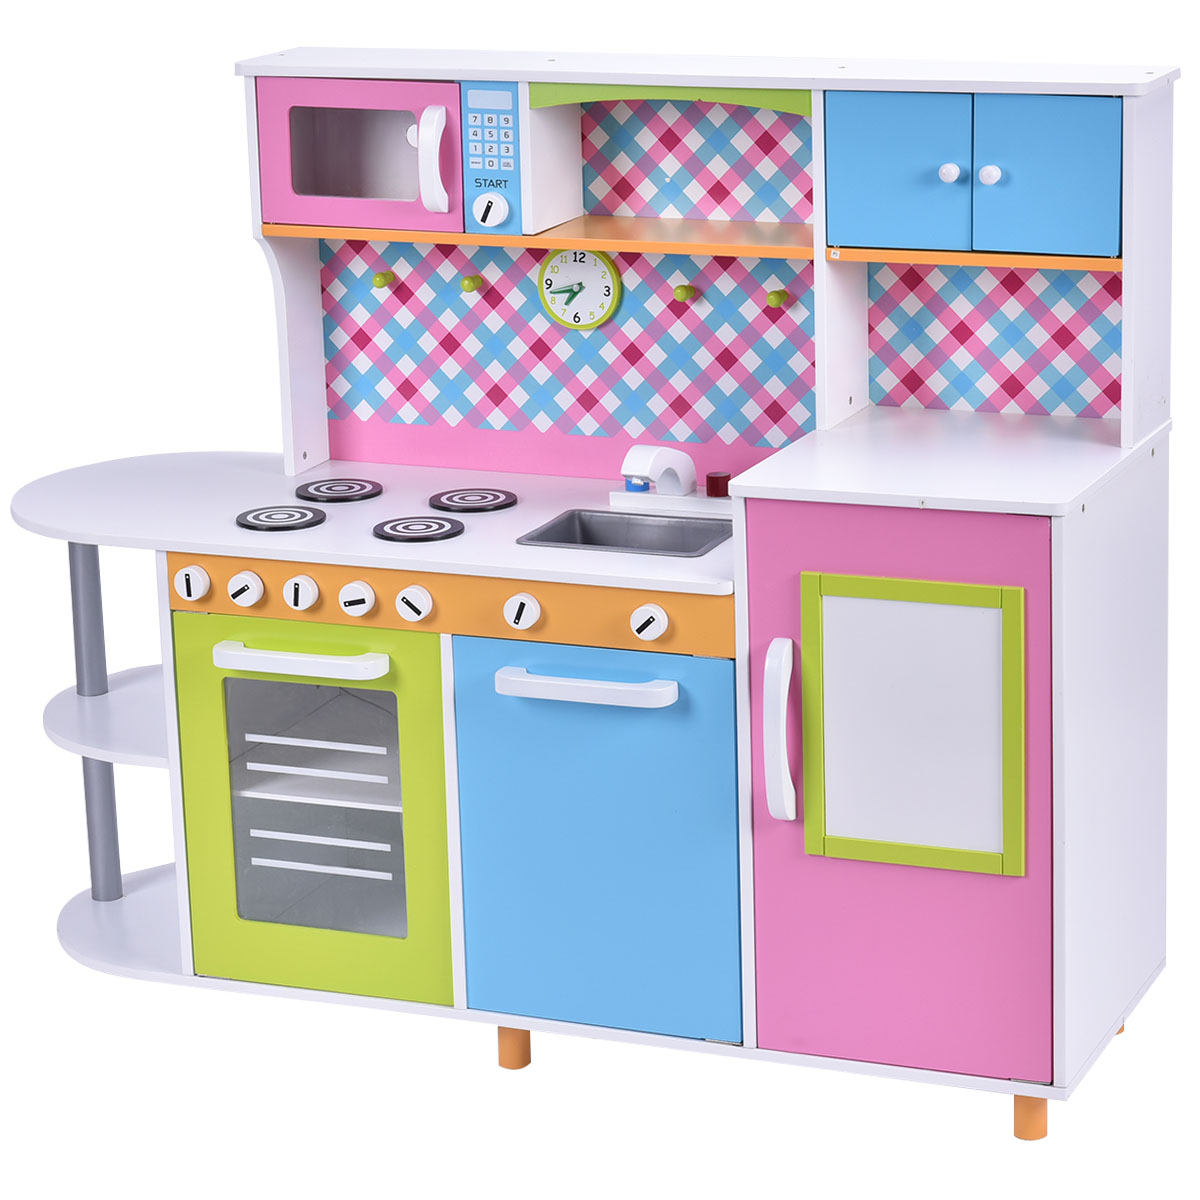 Wooden Play Kitchen Sets For Toddlers - Wooden Designs